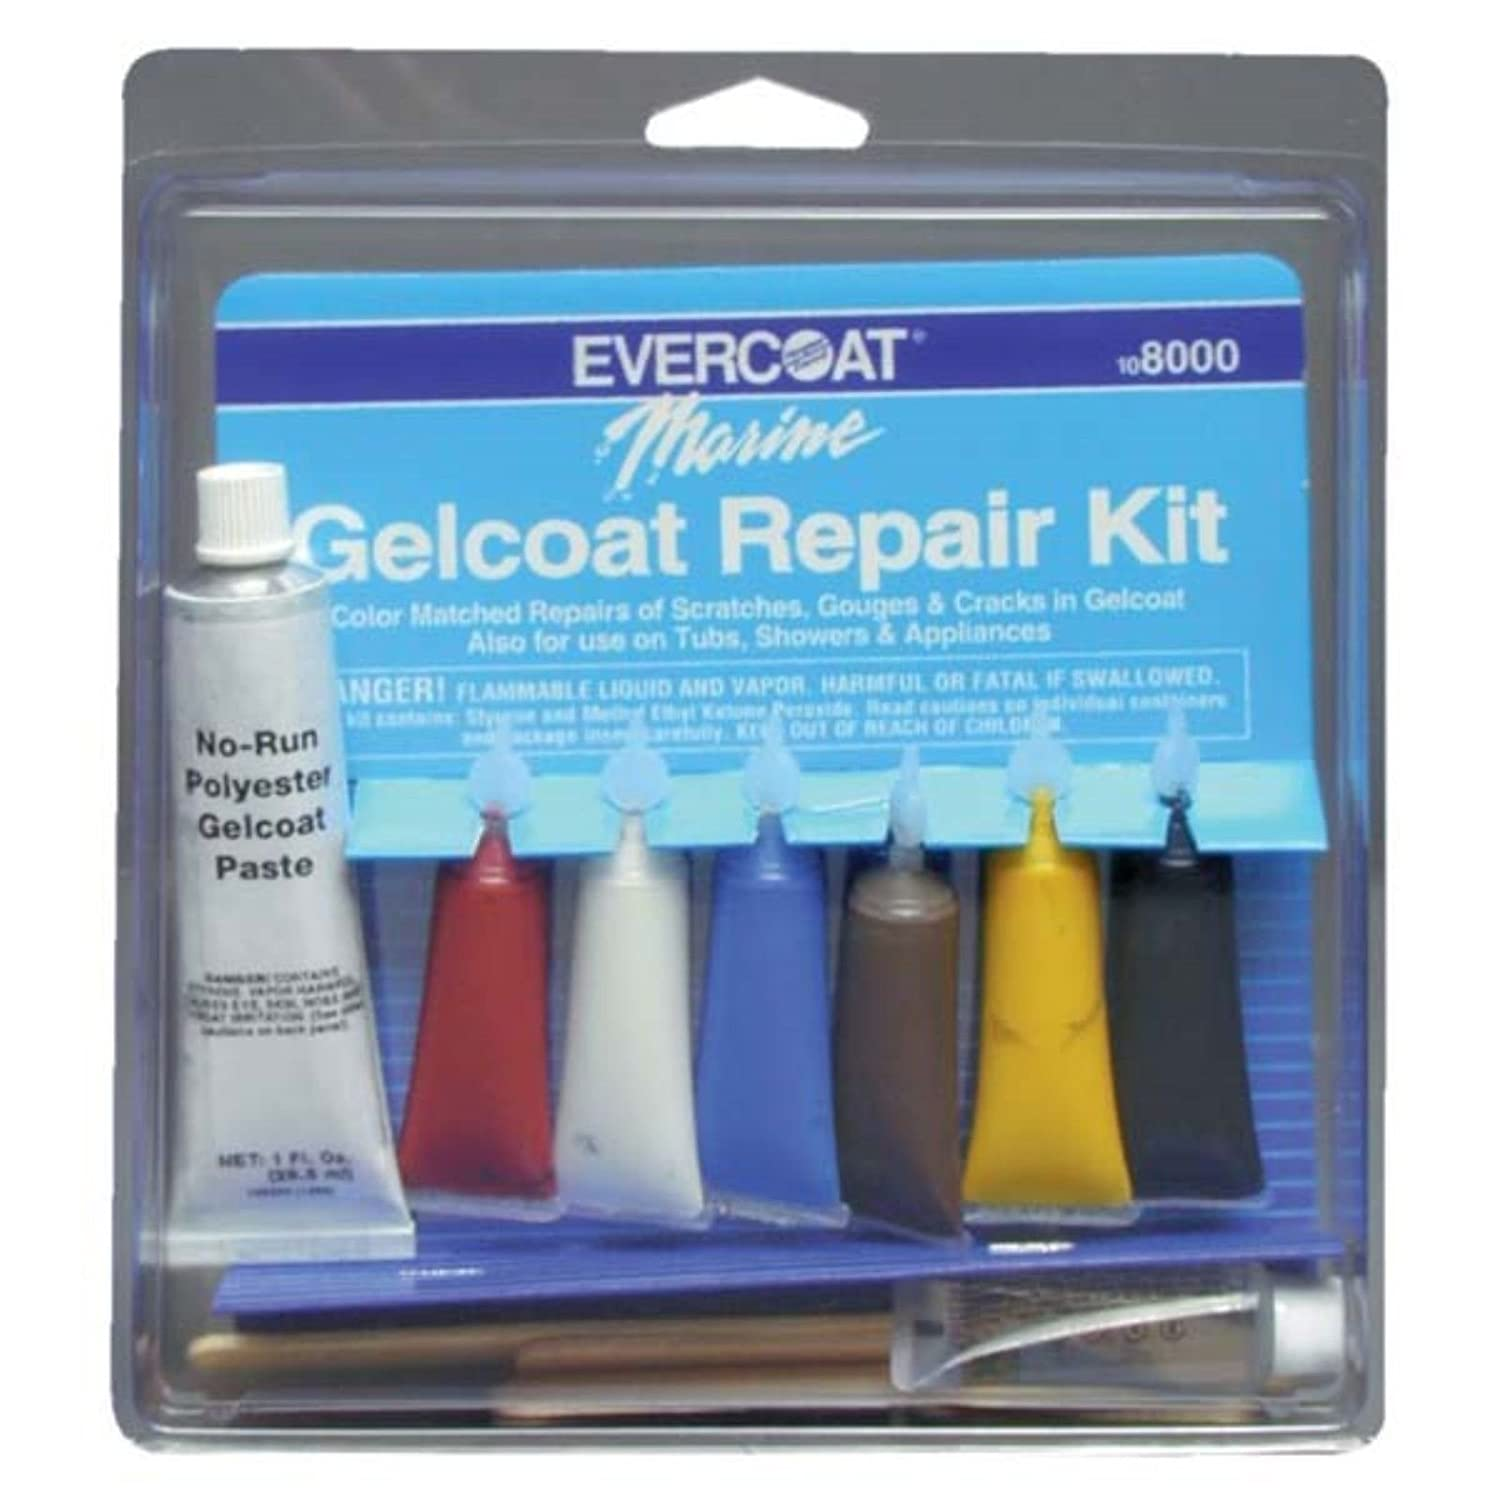 Amazon.com : US Fast Ship Evercoat 8000 Gelcoat Repair Kit Water ...